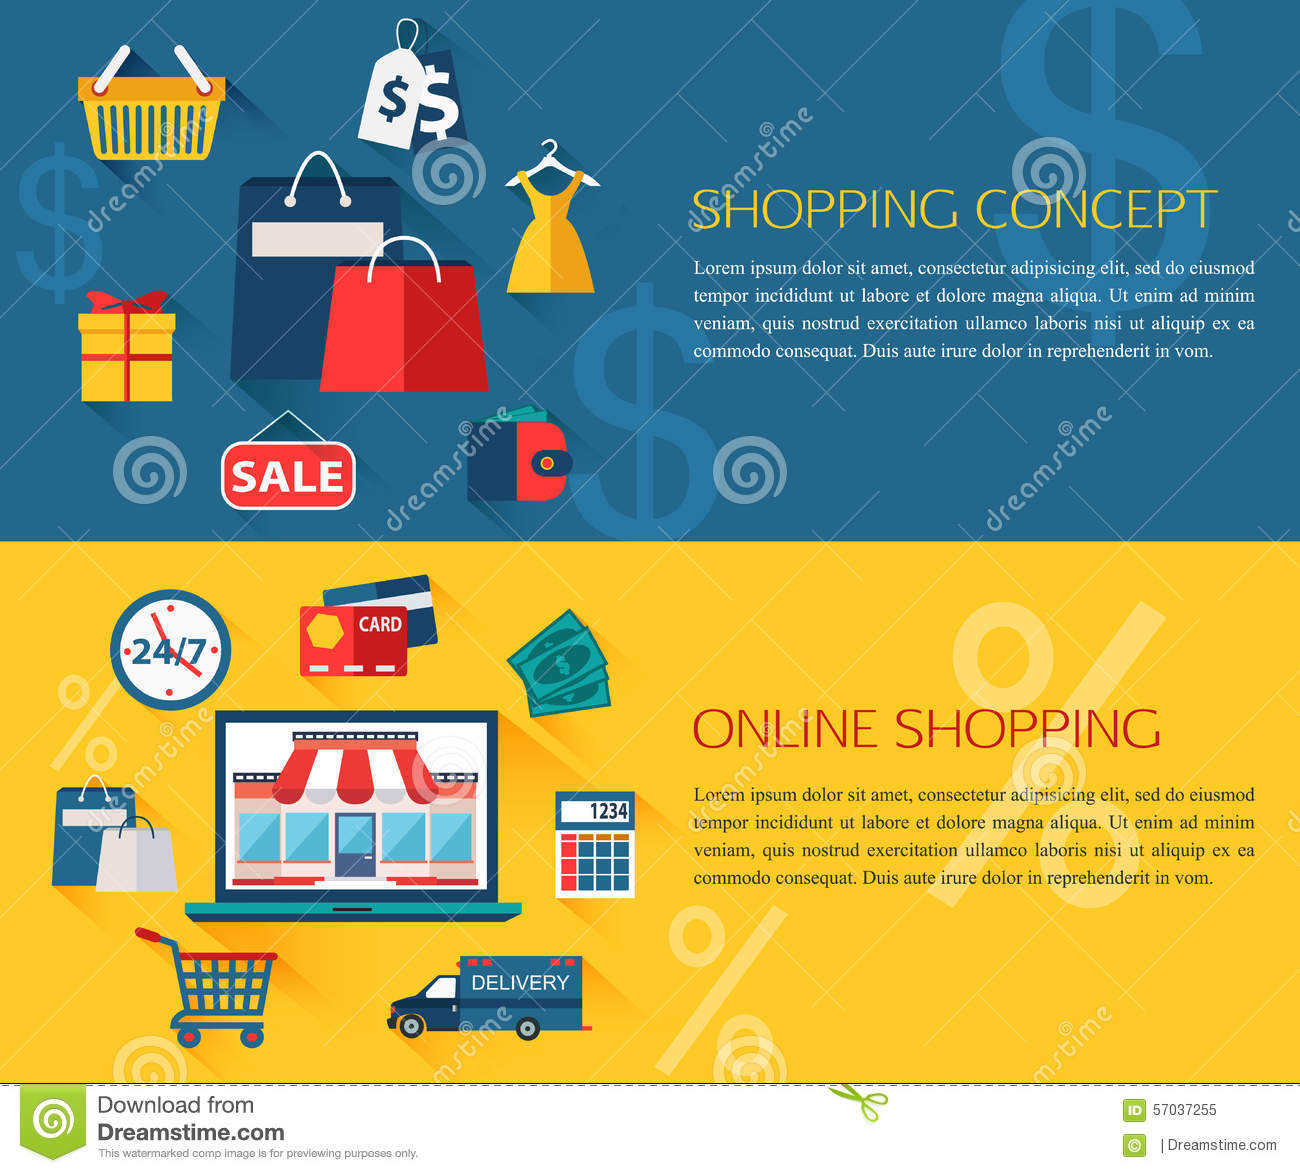 Online shopping in one place